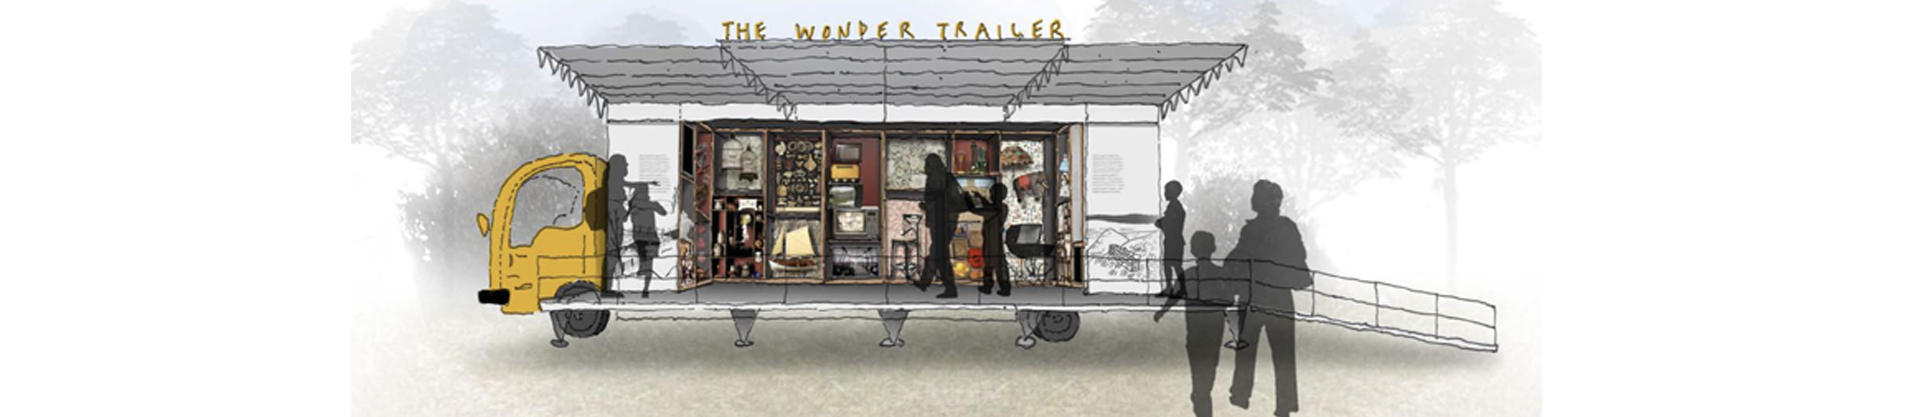 The Wonder Trailer